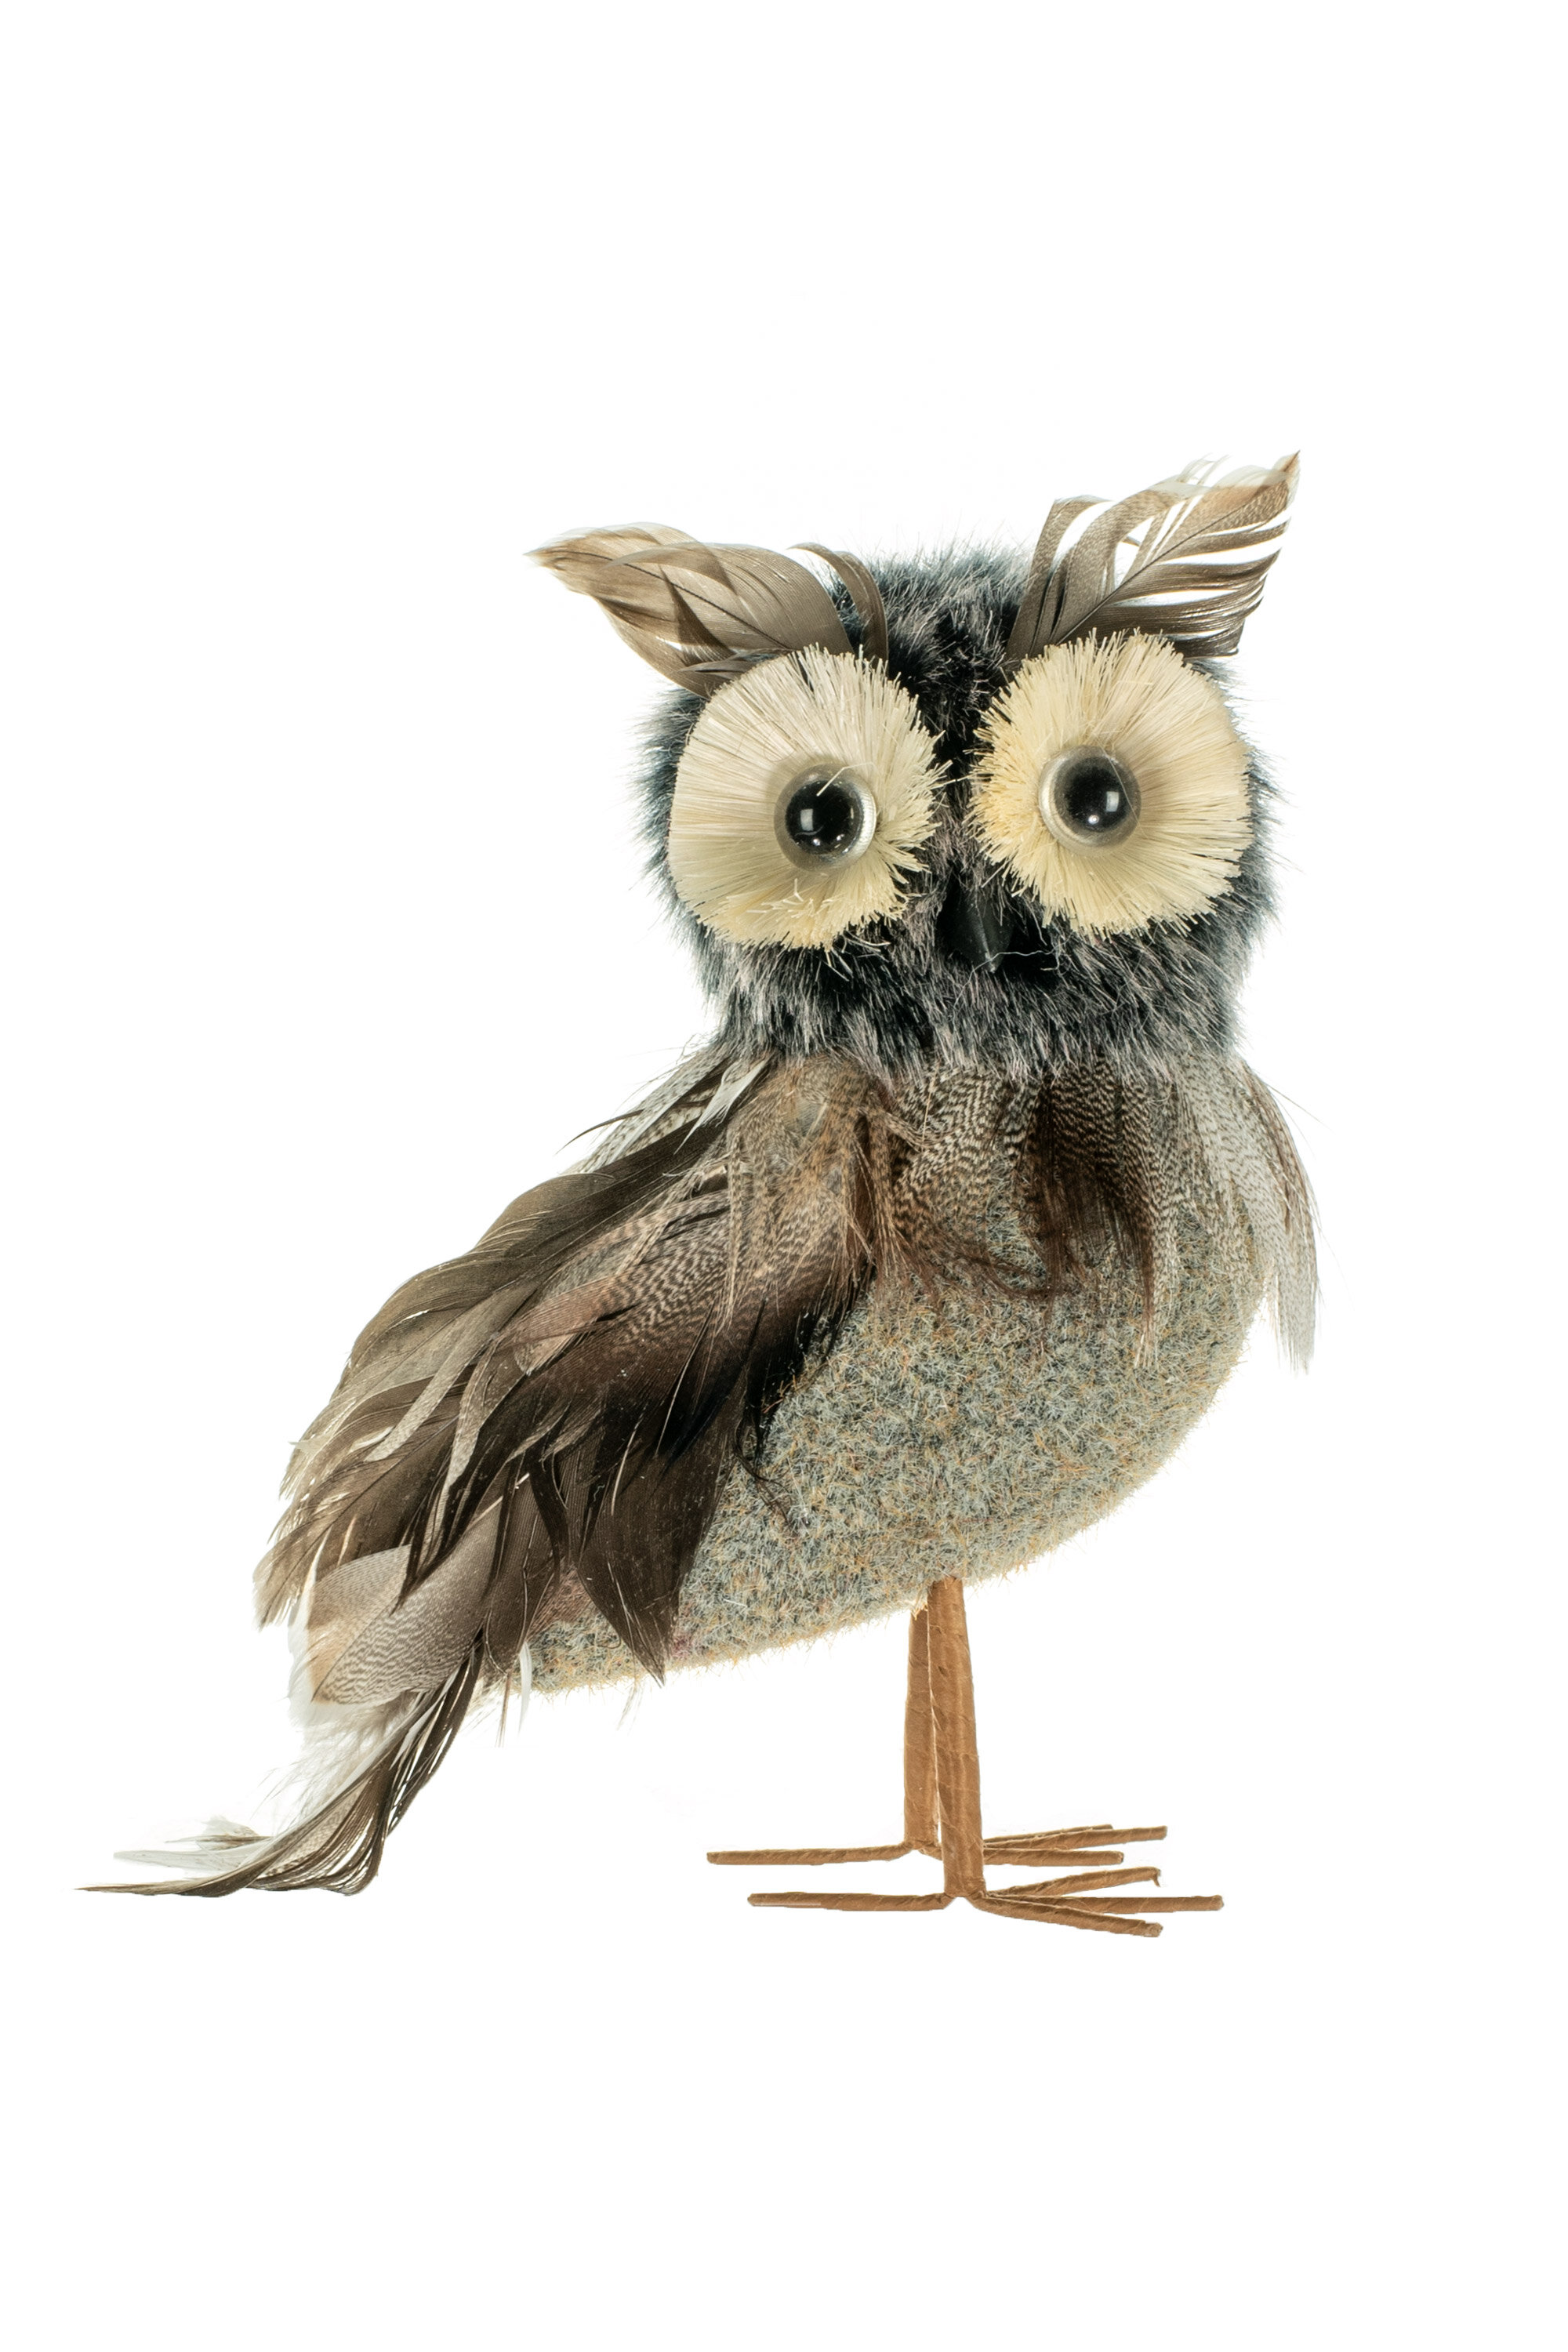 The Holiday Aisle Standing Owl Hanging Figurine Ornament Wayfair